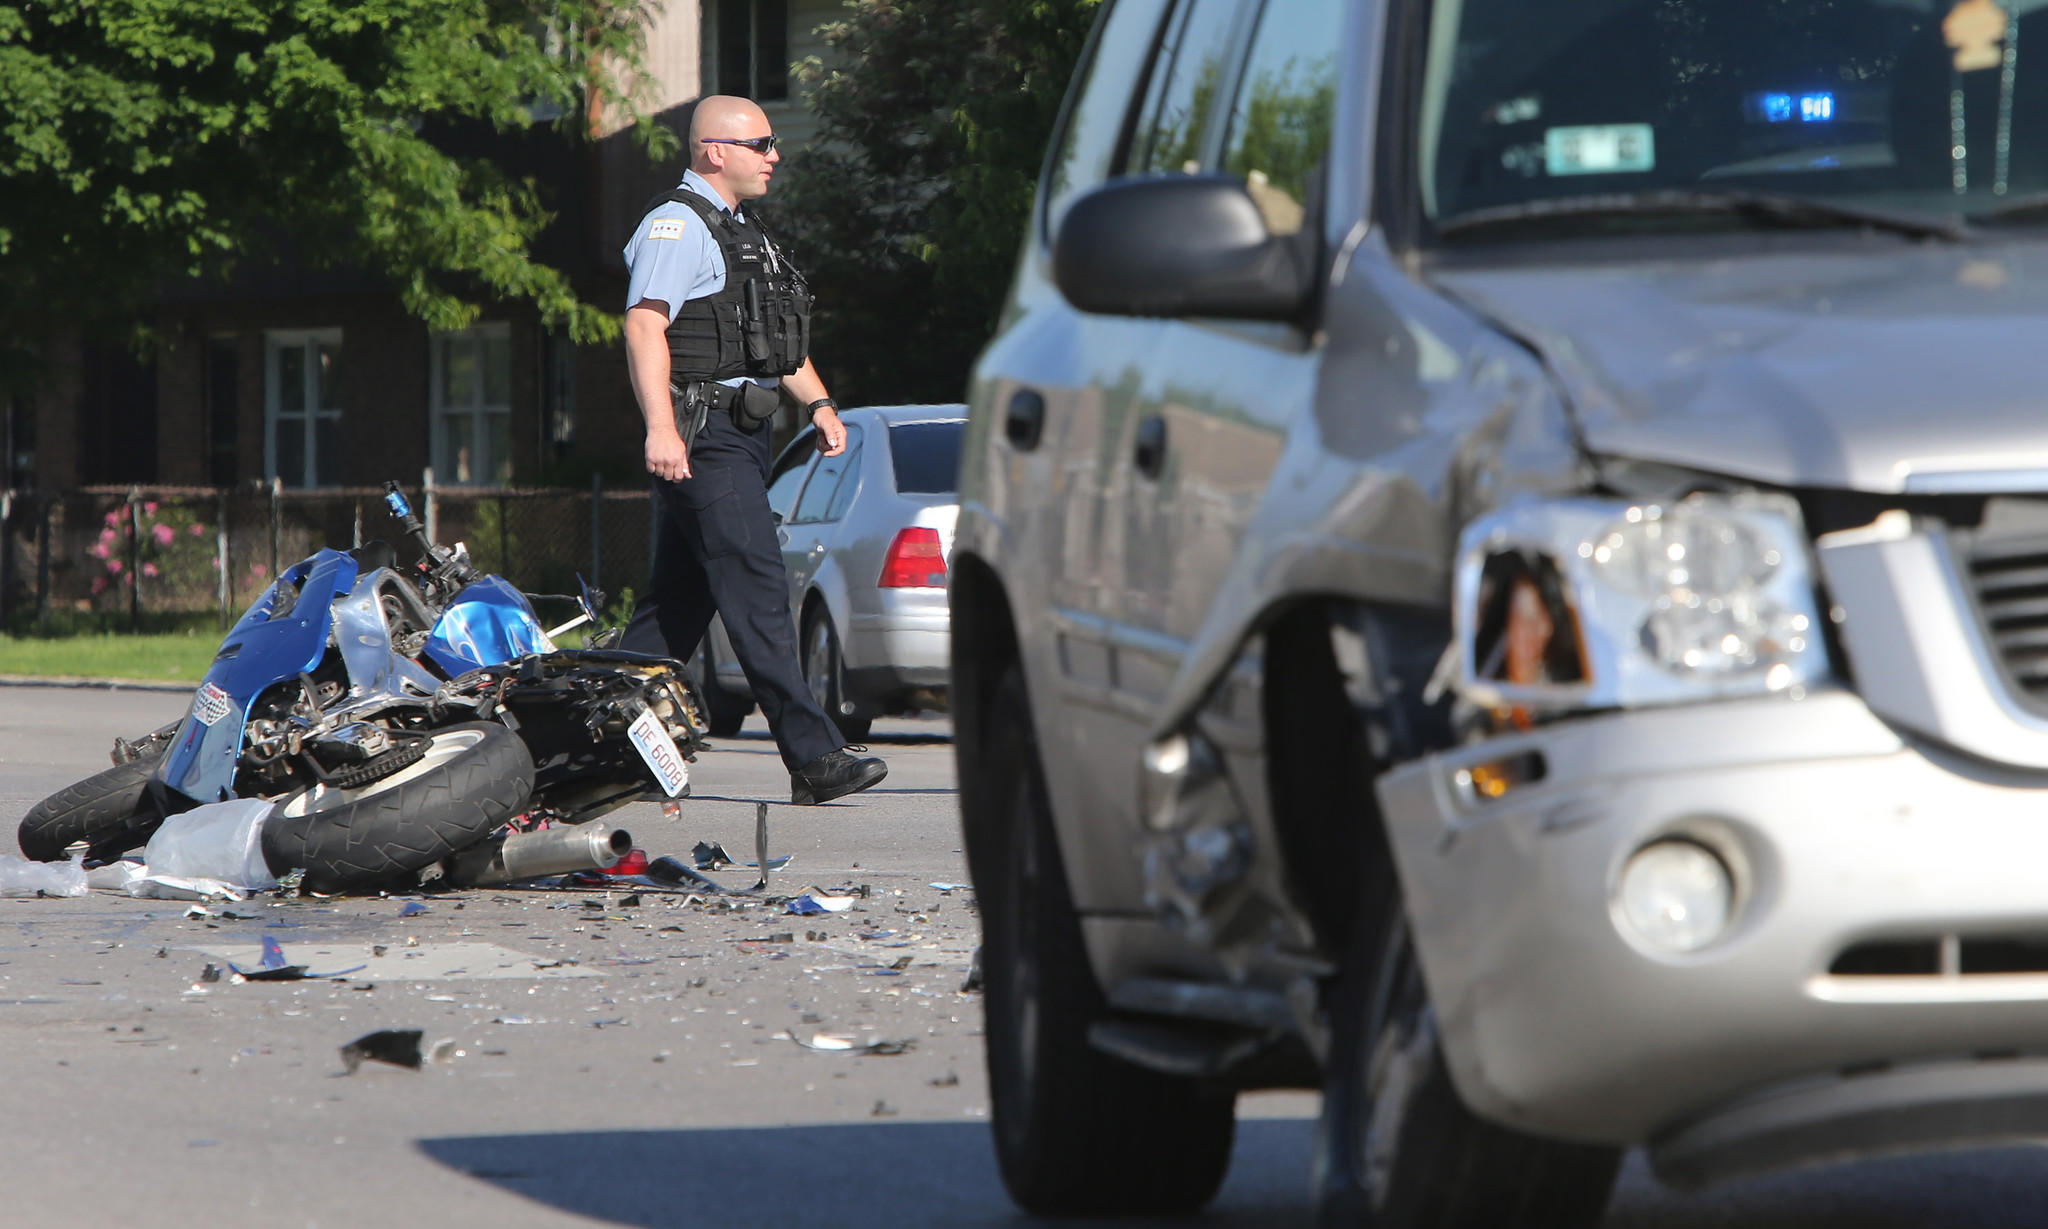 Police investigate the scene of an accident Friday morning involving a motorcycle and a GMC Envoy at the intersection of Washington Boulevard and Pulaski Road in Chicago.